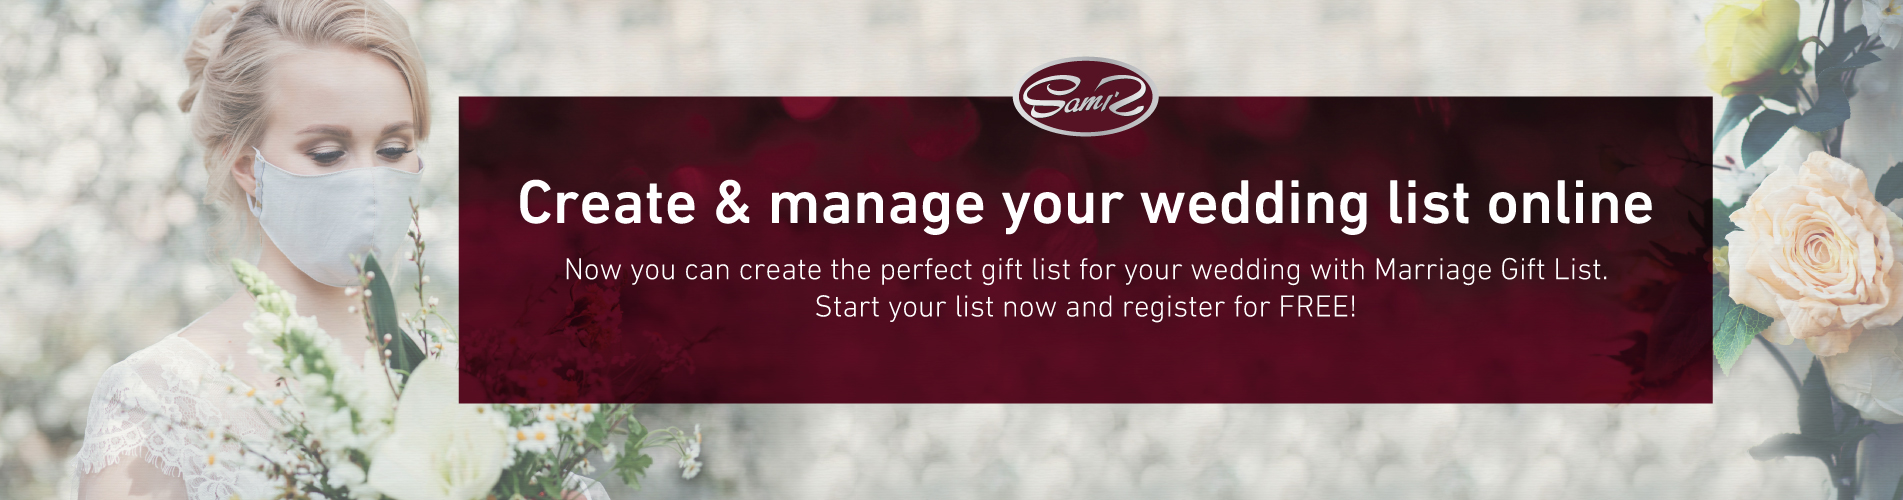 Gift registry for wedding gifts.